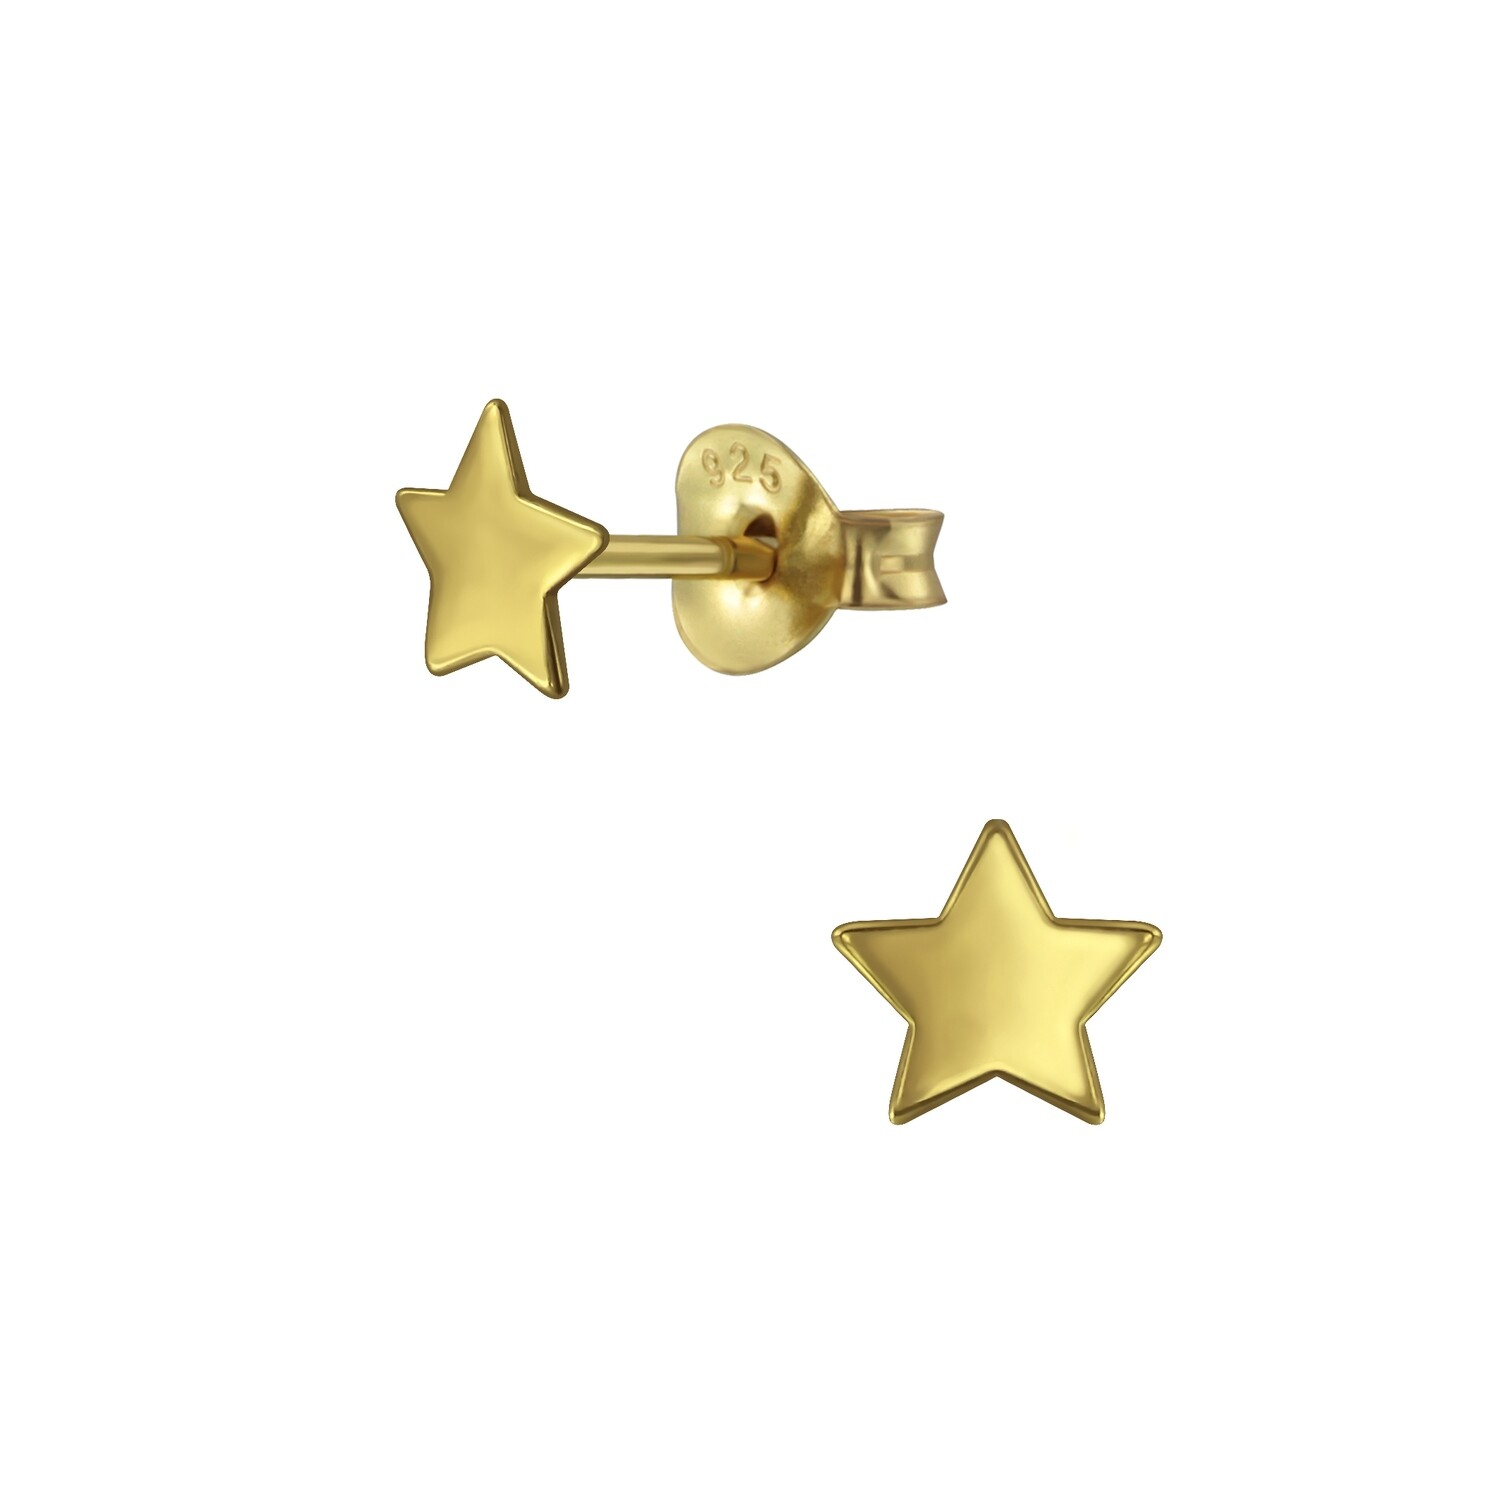 5mm Star Posts - Gold Plated Sterling Silver - P60-3